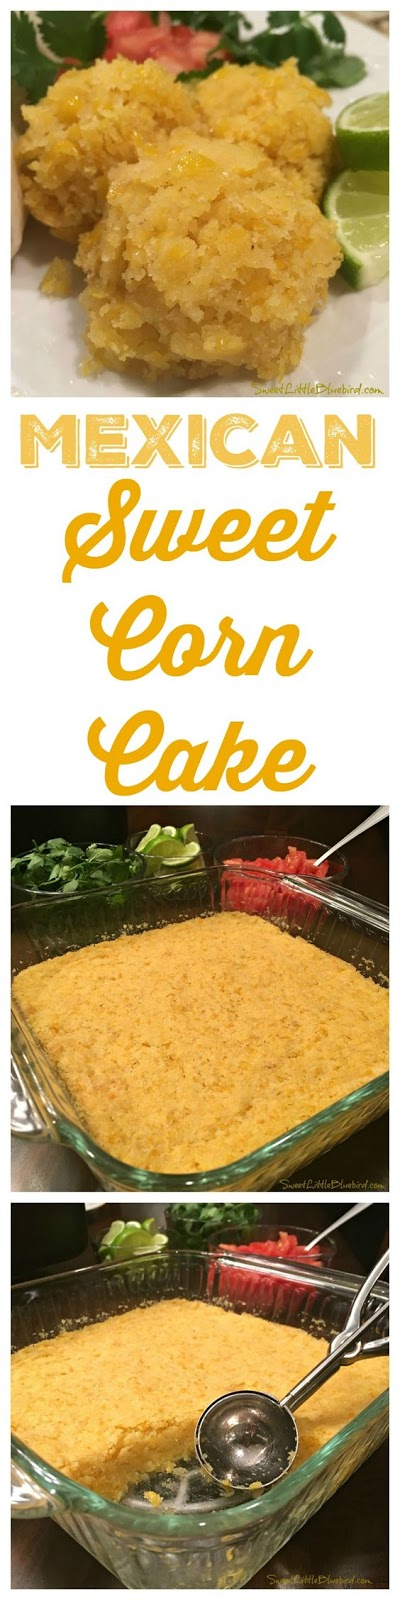 Sweet Corn Cake | Food And Cake Recipes